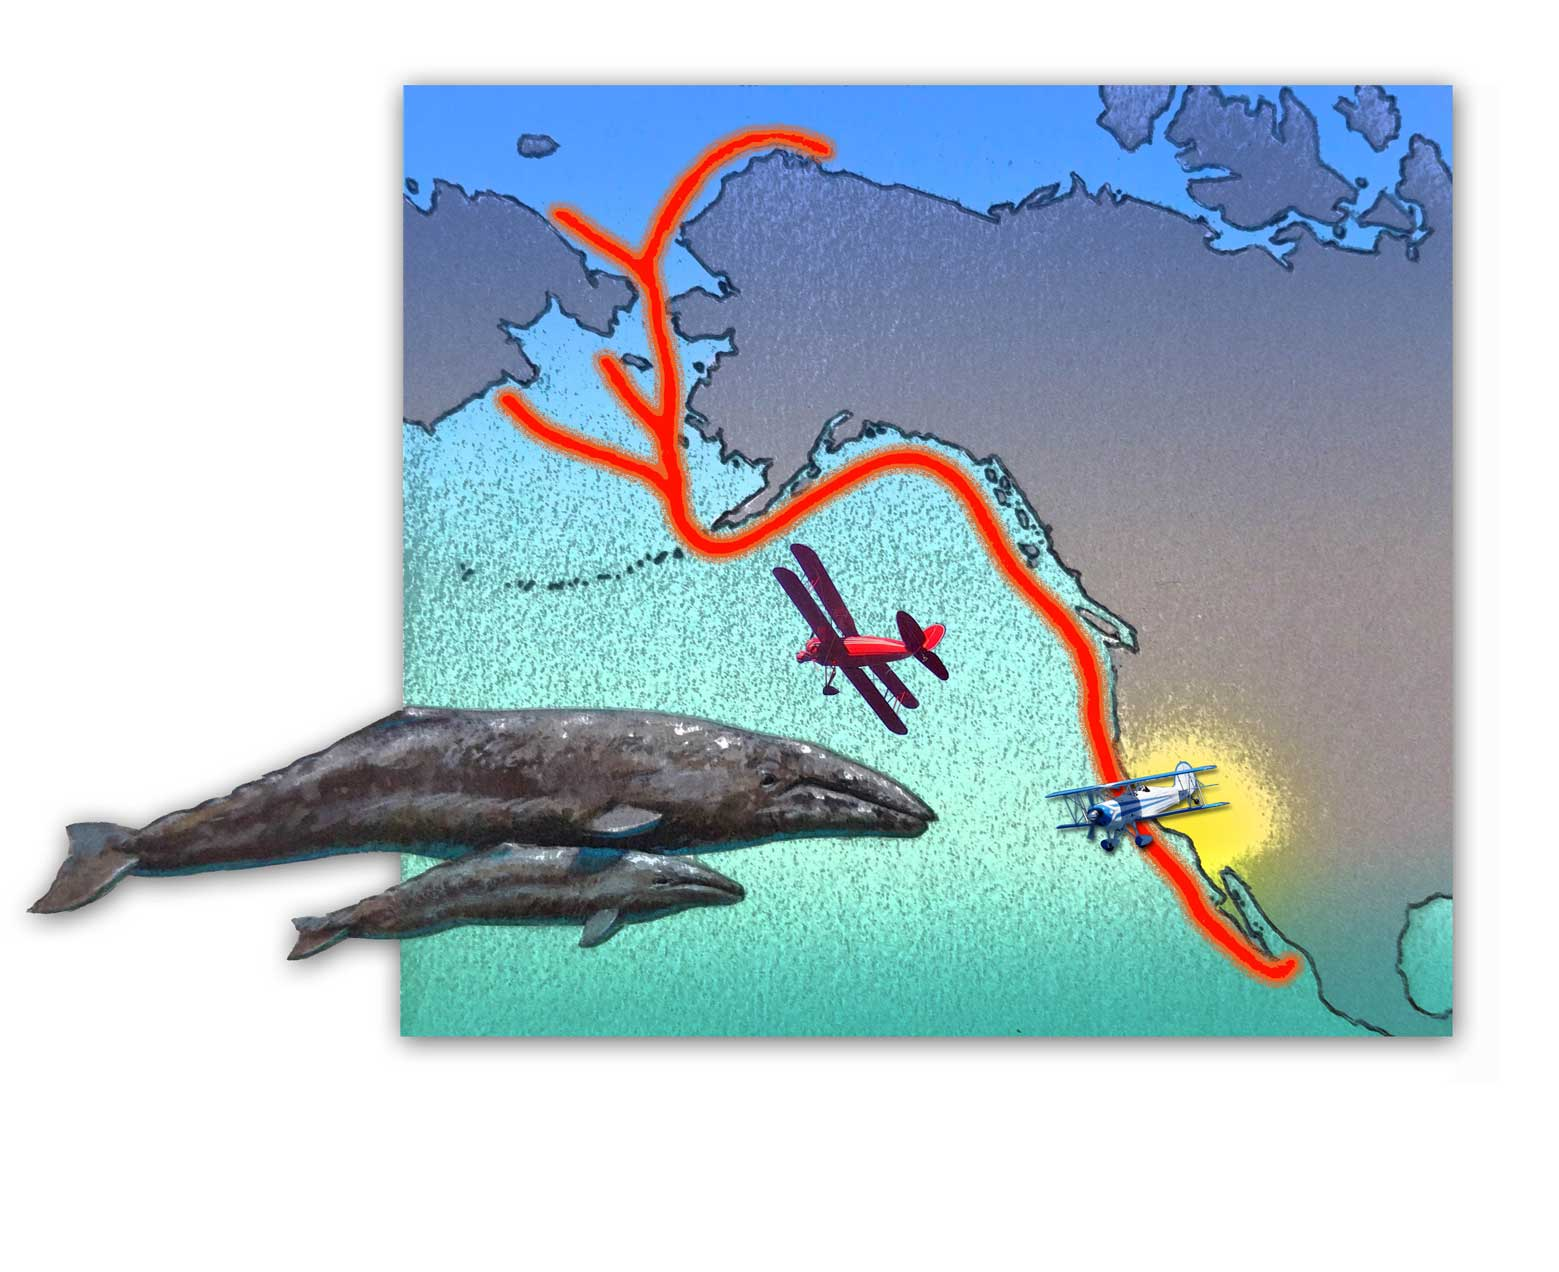 Gray Whale migration pattern.  They pass by San Diego in the winter between December and March.